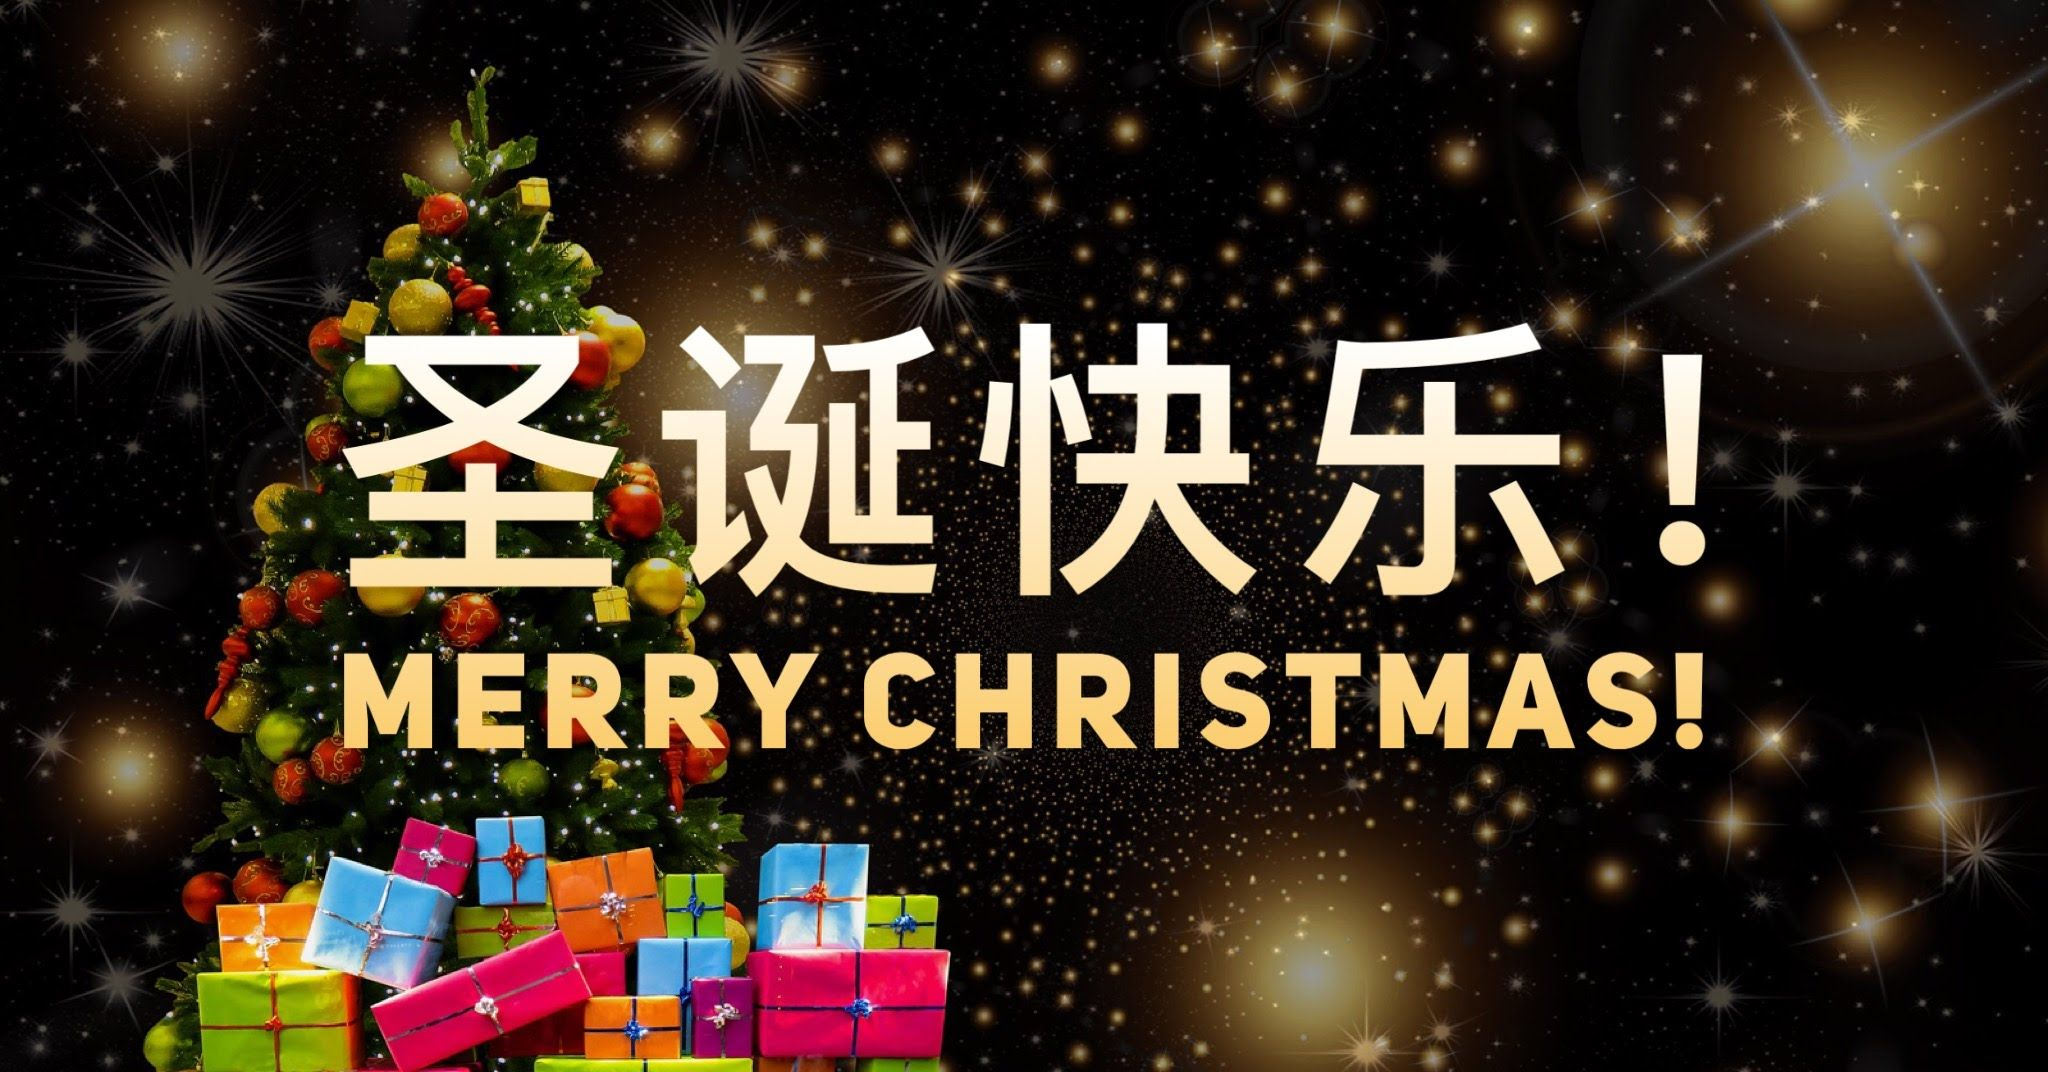 Merry christmas in chinese chinese wishes and greetings merry christmas in chinese chinese wishes and greetings for the holiday season kristyandbryce Images